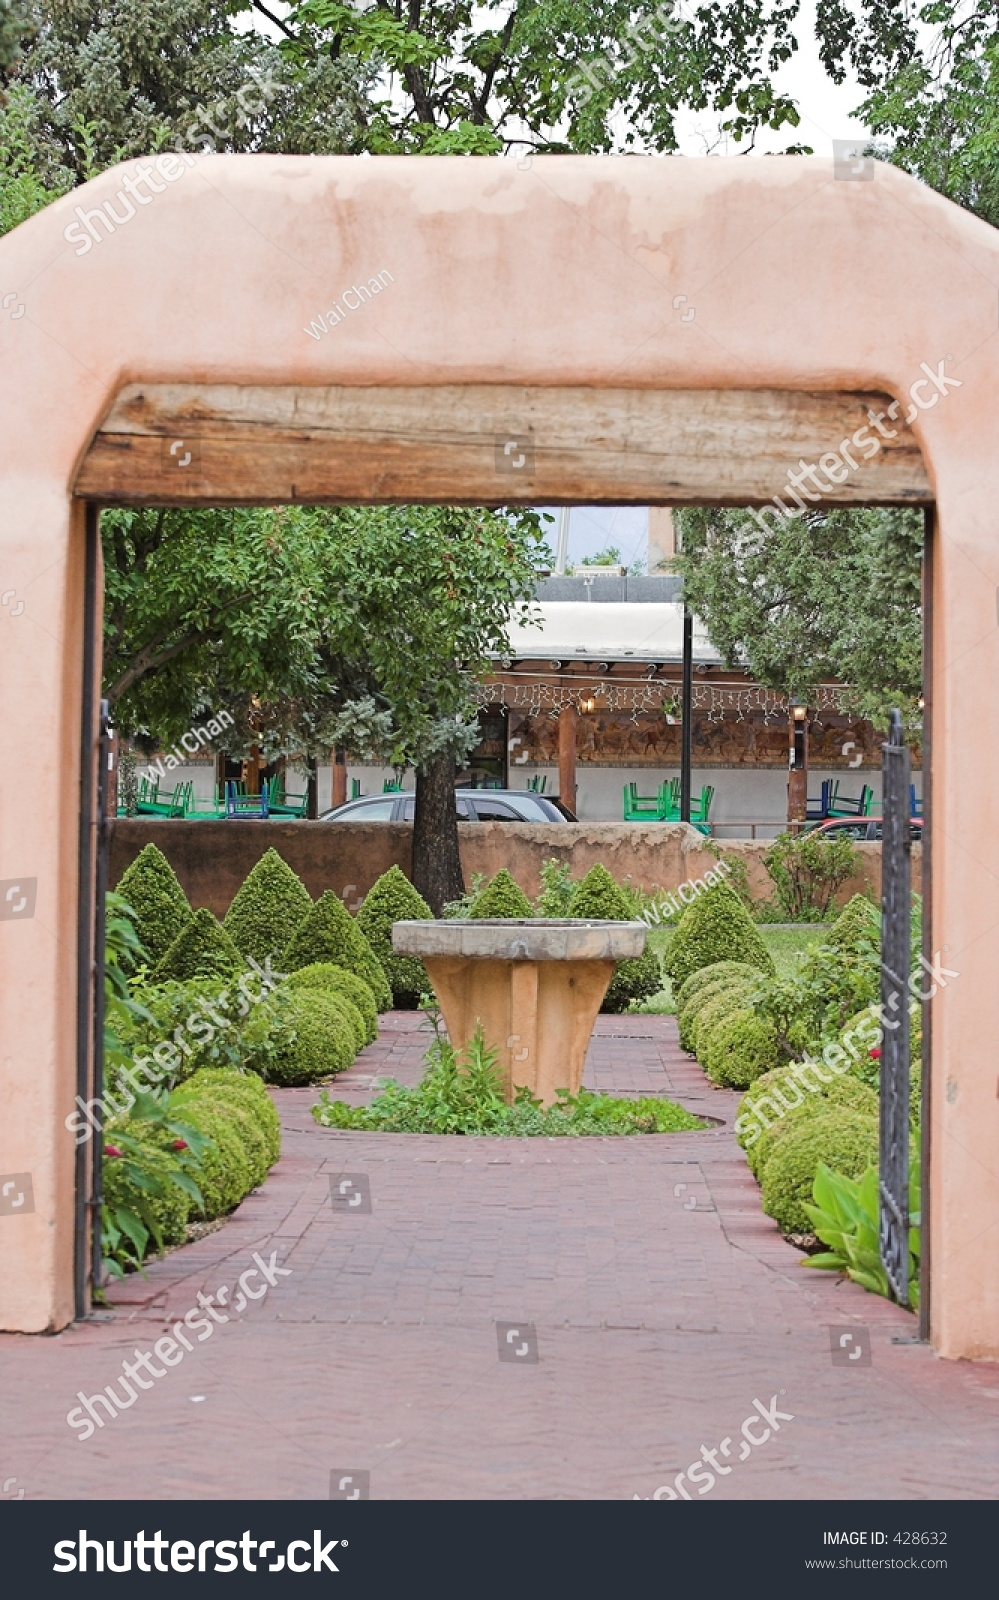 New Mexican Style Architecture Garden